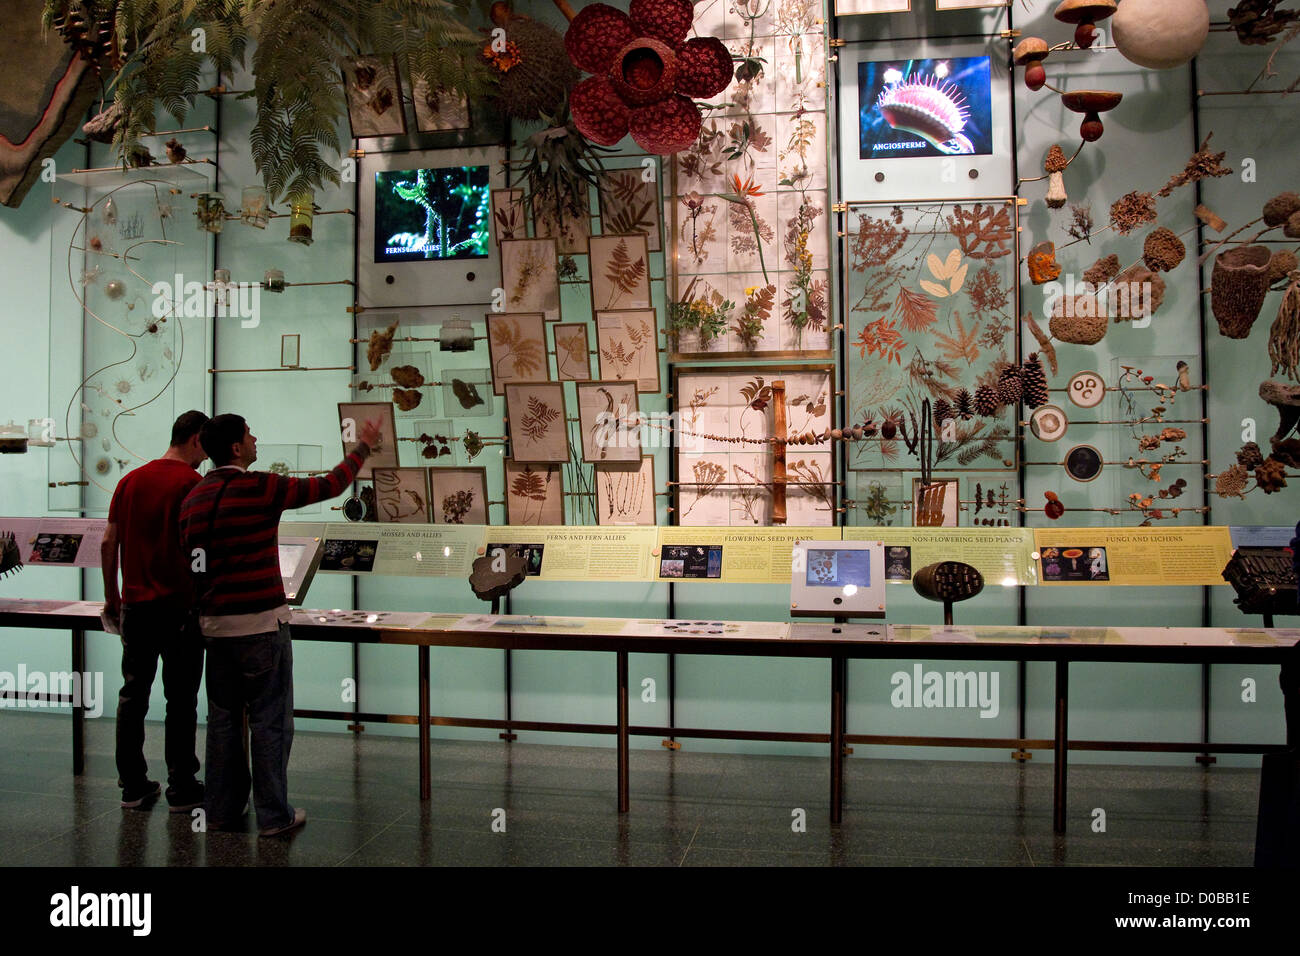 Two visitors to the American Museum of Natural History view natural history exhibit display, New York City, NYC, - Stock Image